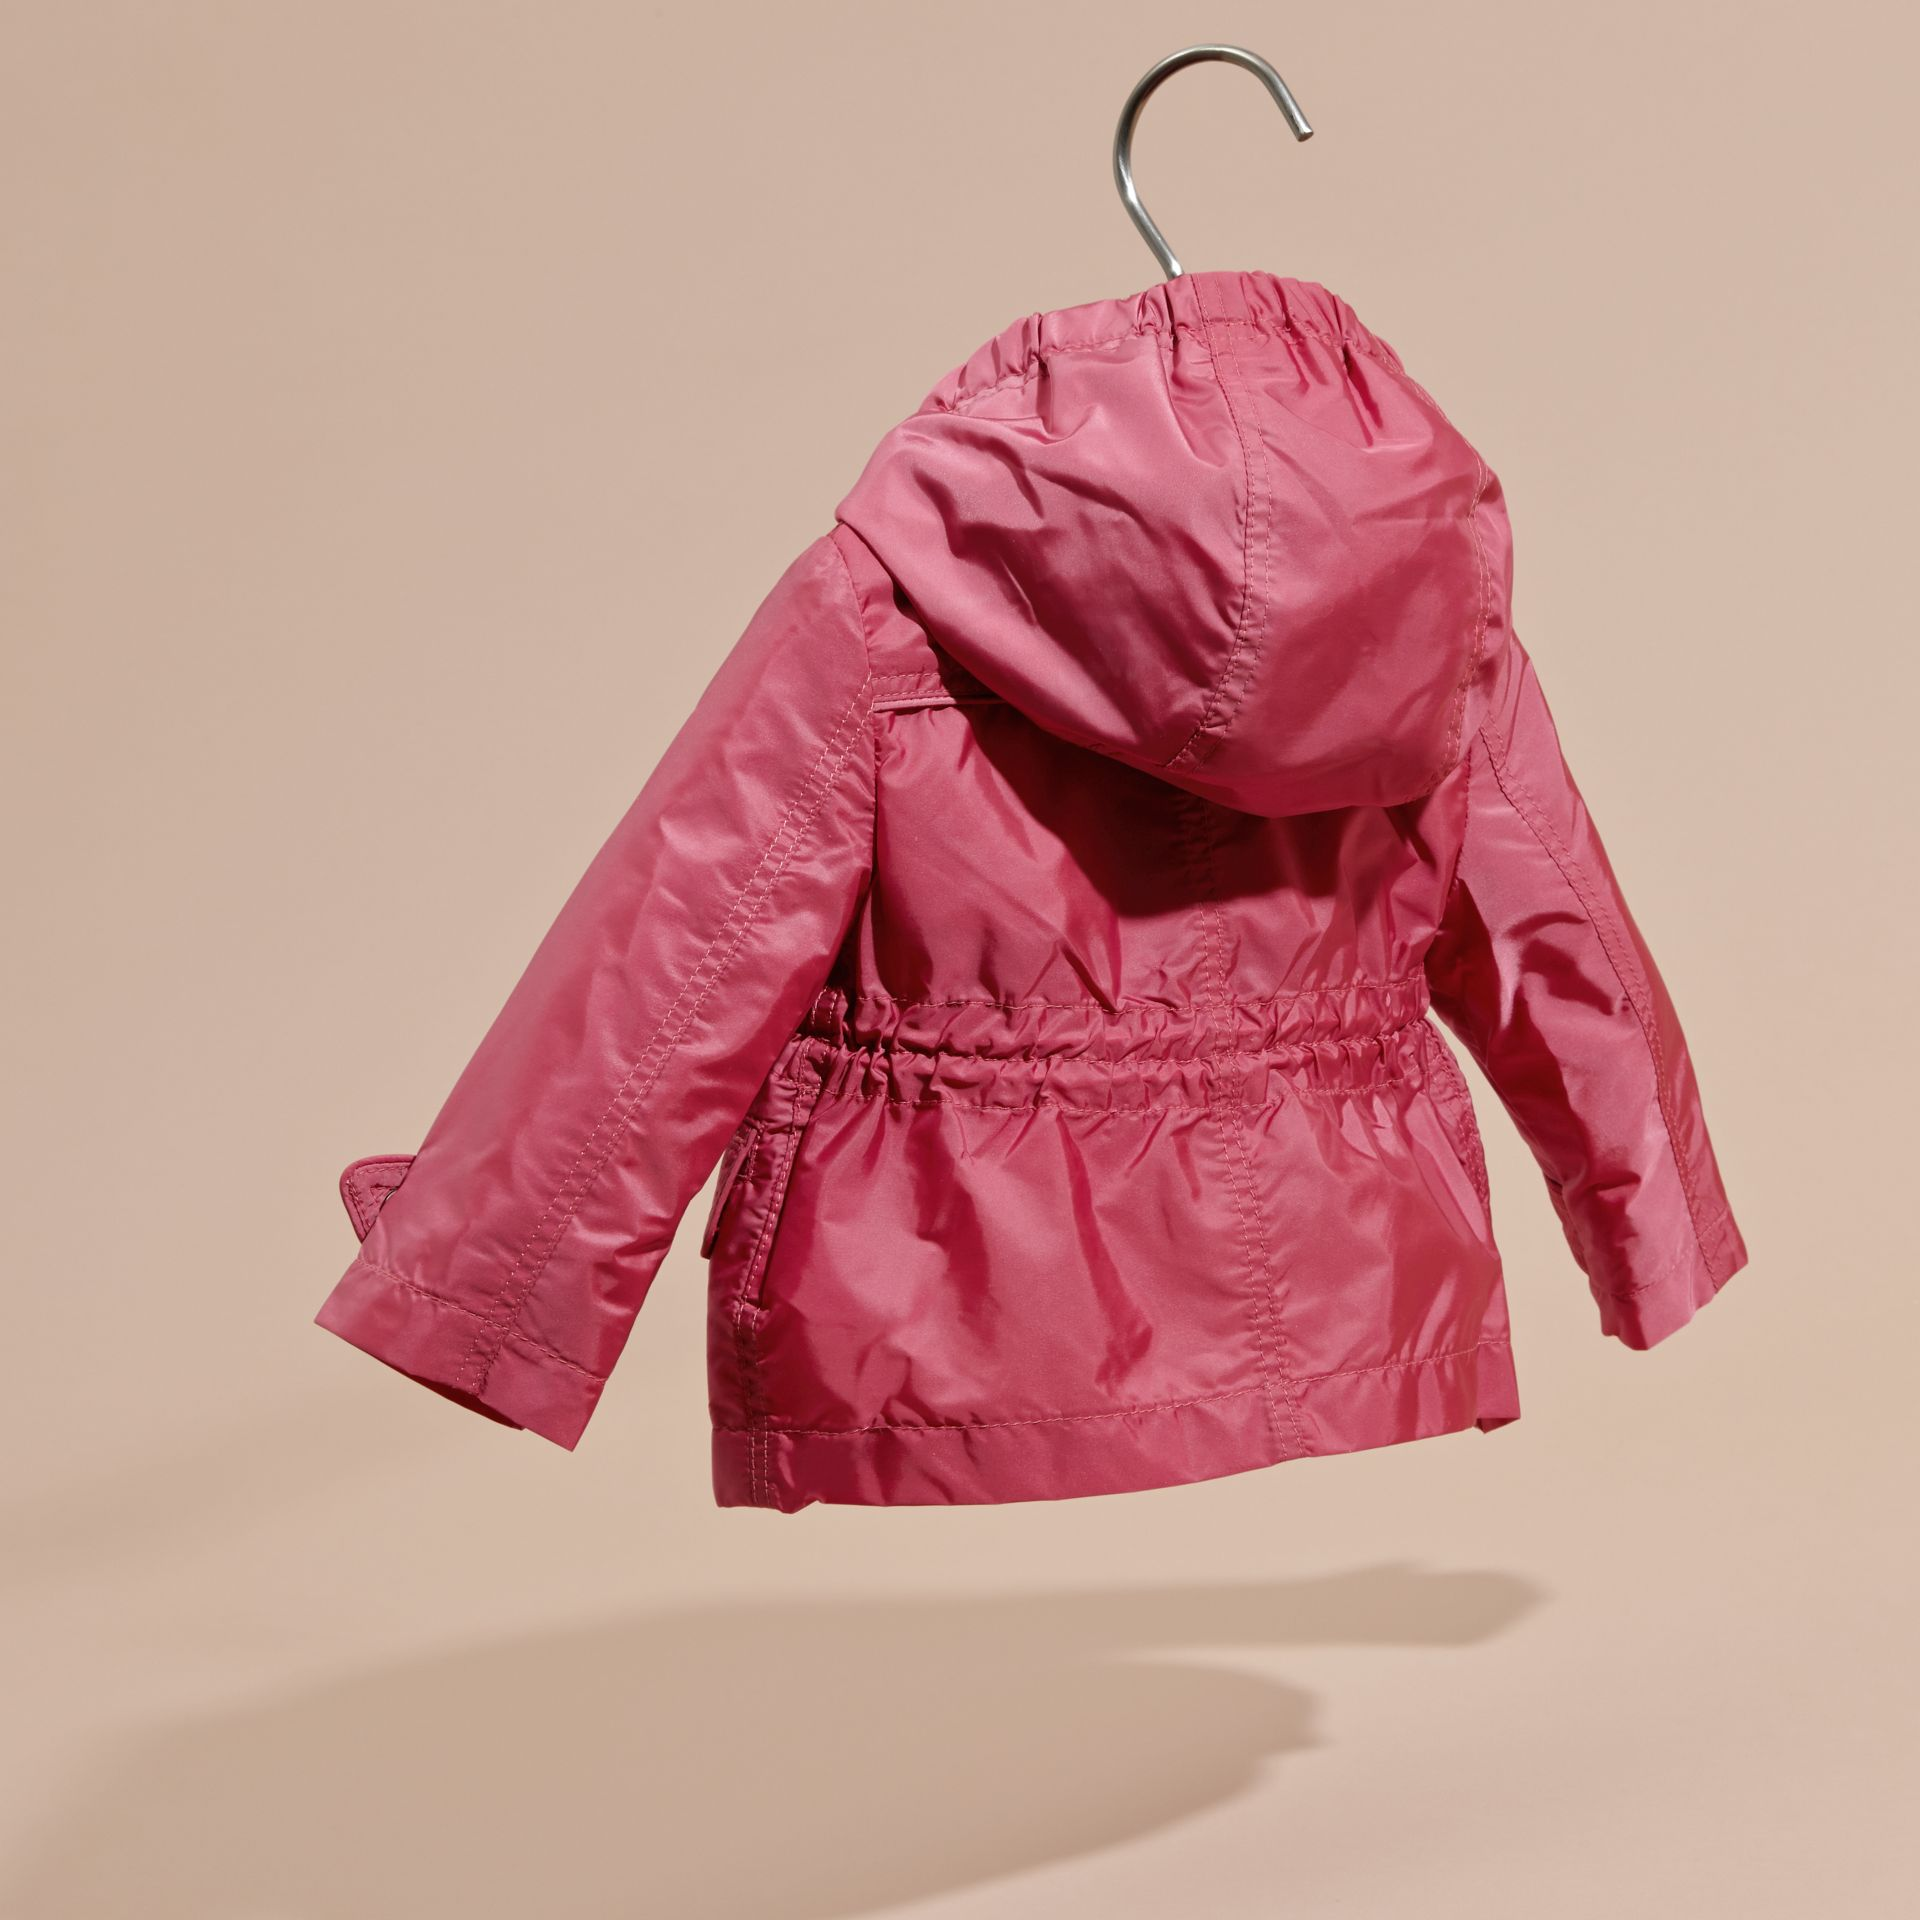 Hooded Packaway Technical Jacket in Pink Azalea - gallery image 4